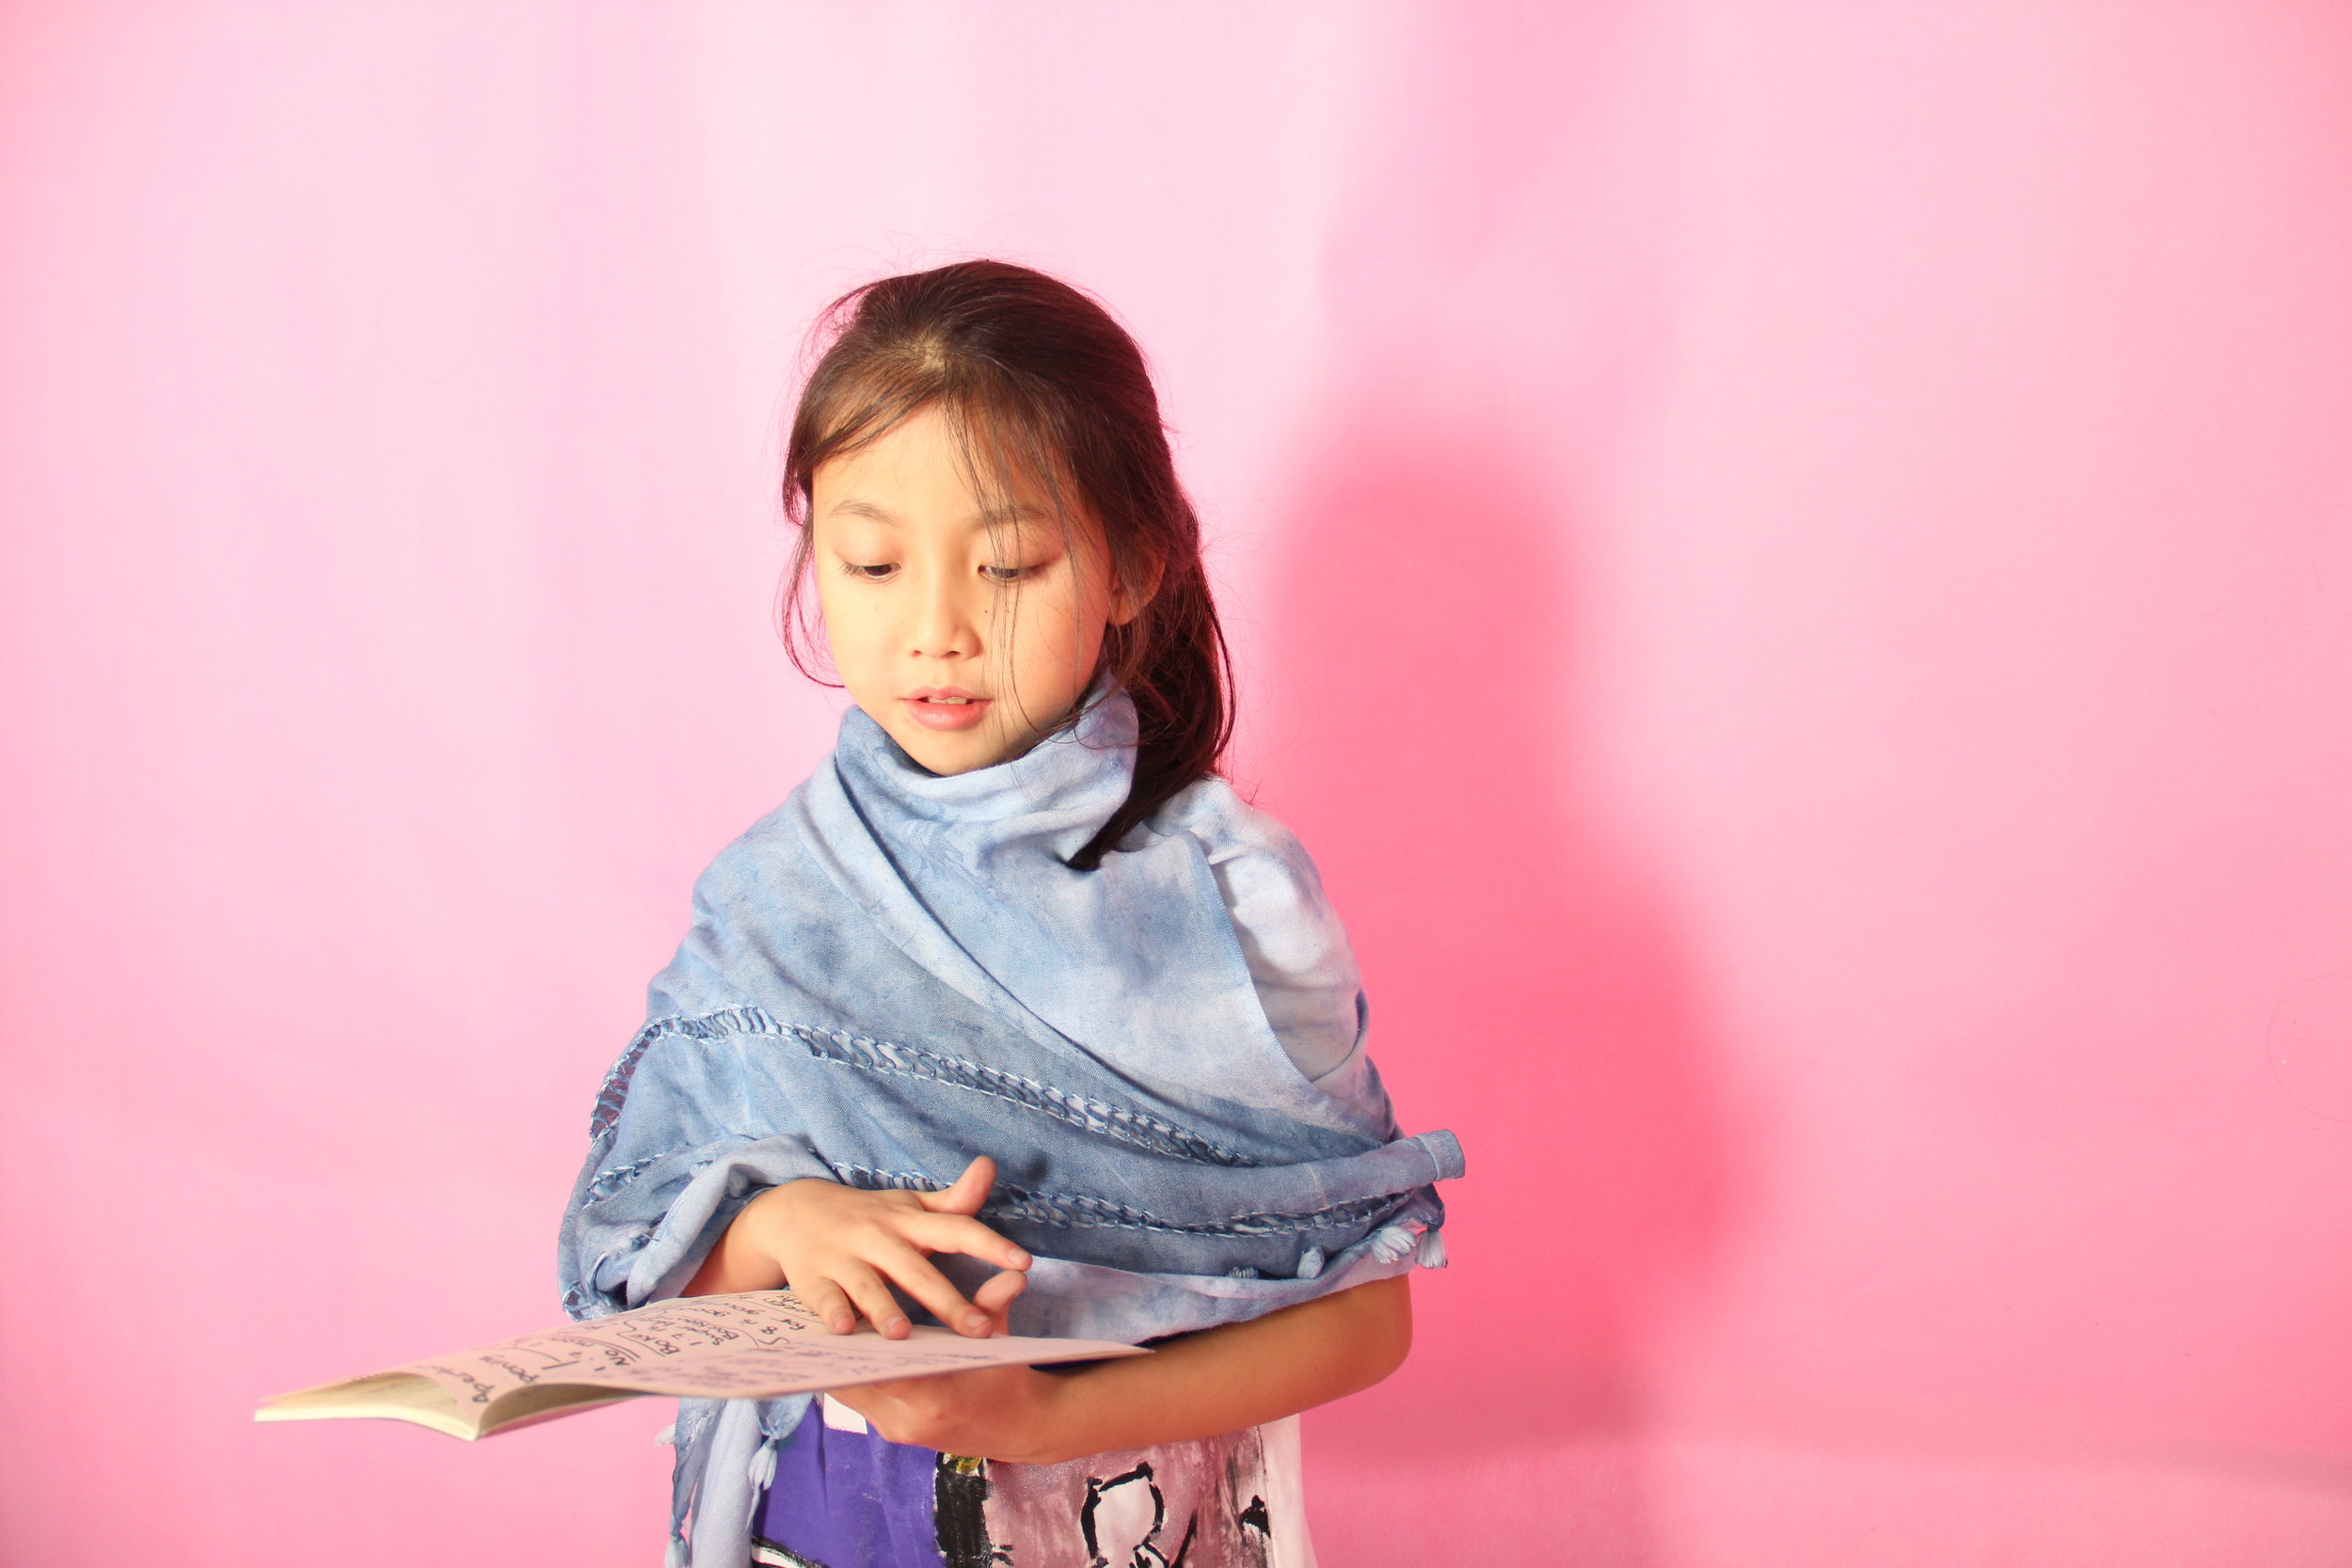 Shibori Indigo-dyed Linen Scarf  crafted and modelled by Sophia